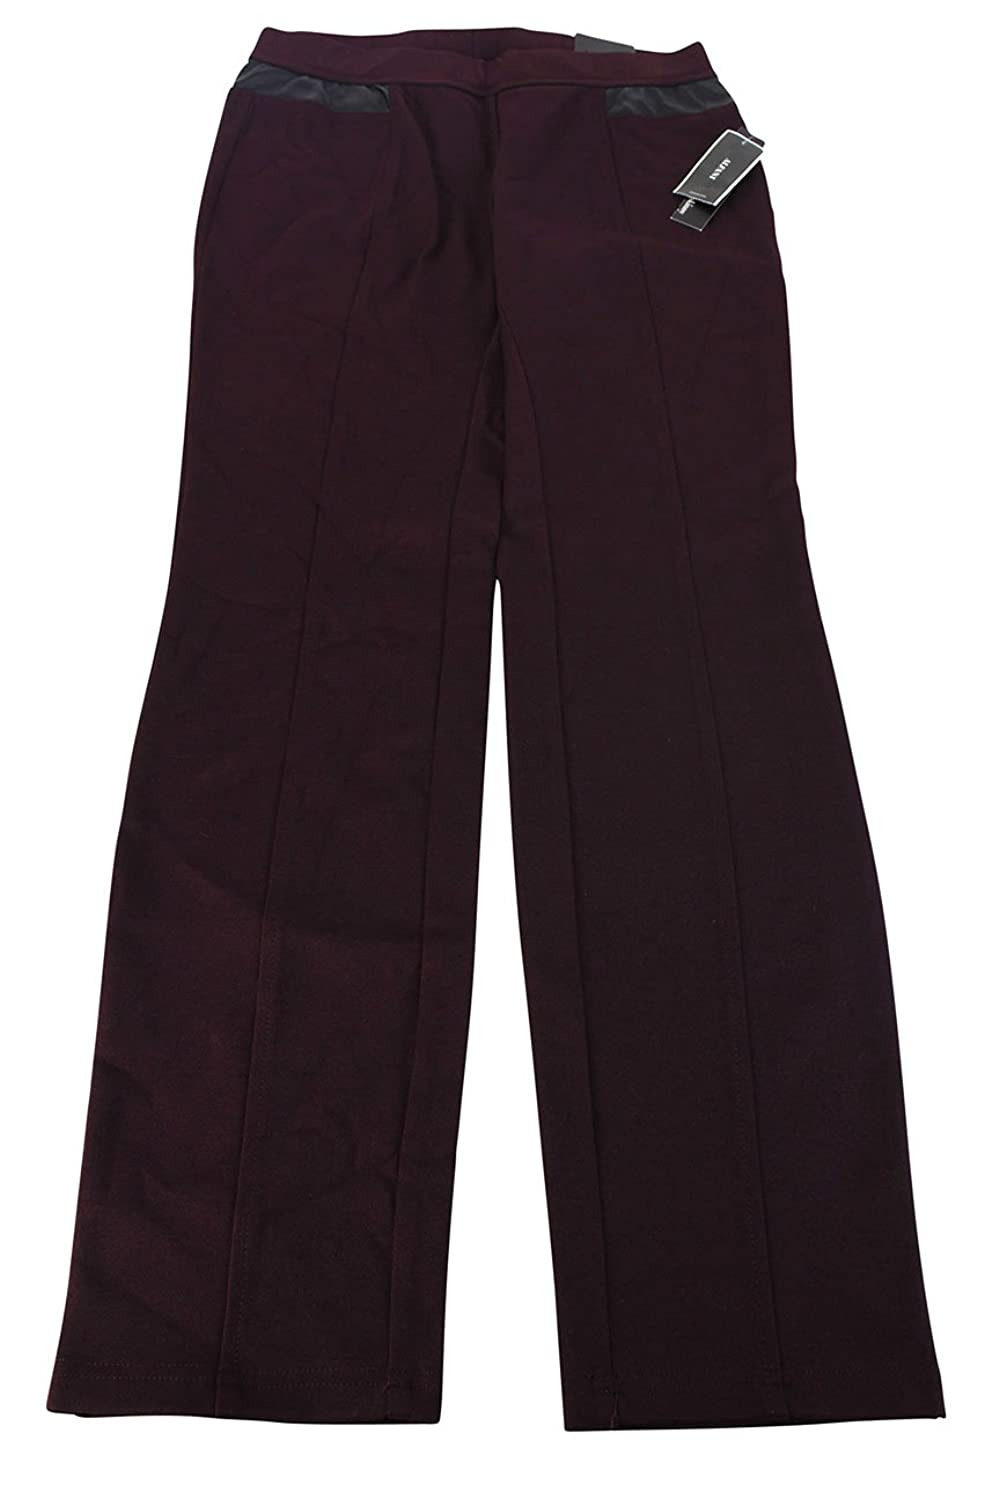 Alfani Womens Slim Fit Pants - Red Rayon